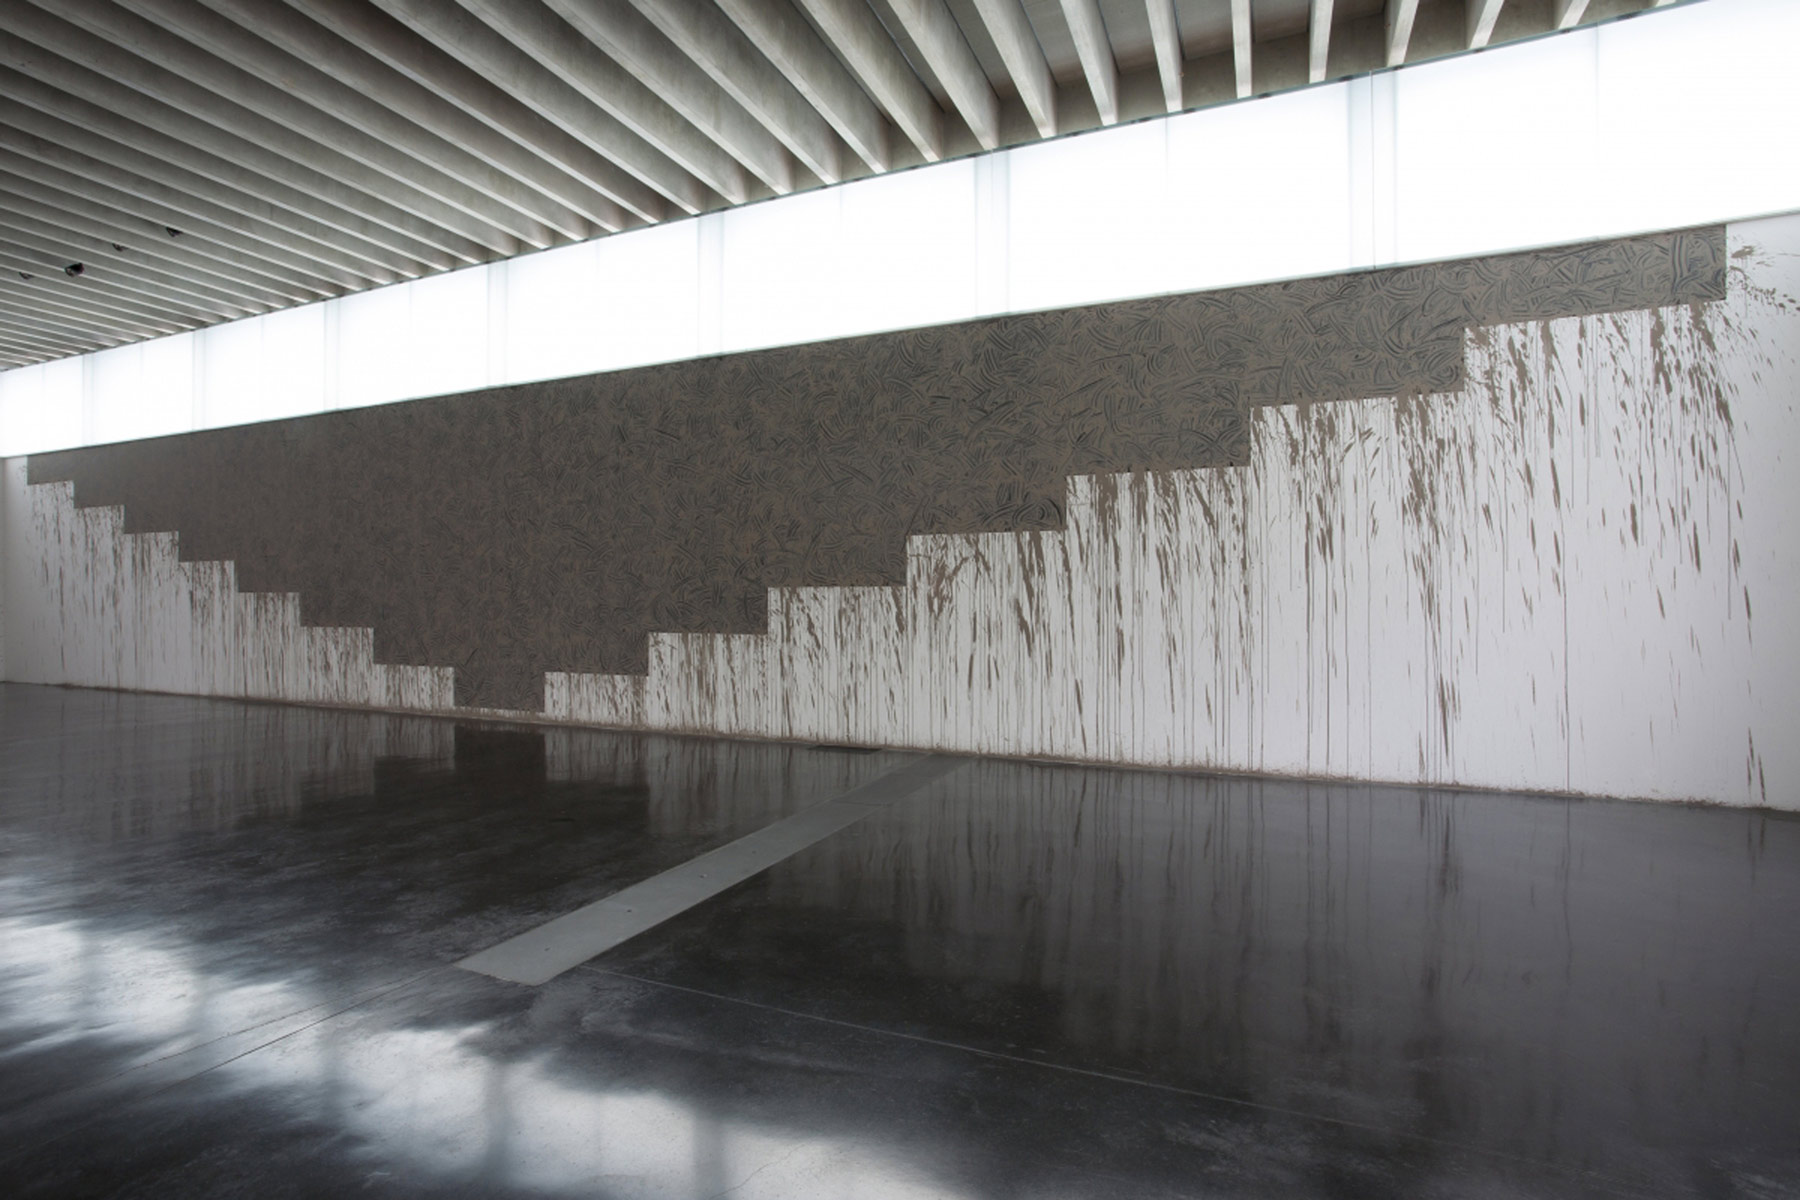 Alastair Mackie|Mud Form|2015|mud|sculpture|Black Country Rhythms|Richard Long|The New Art Gallery|Walsall